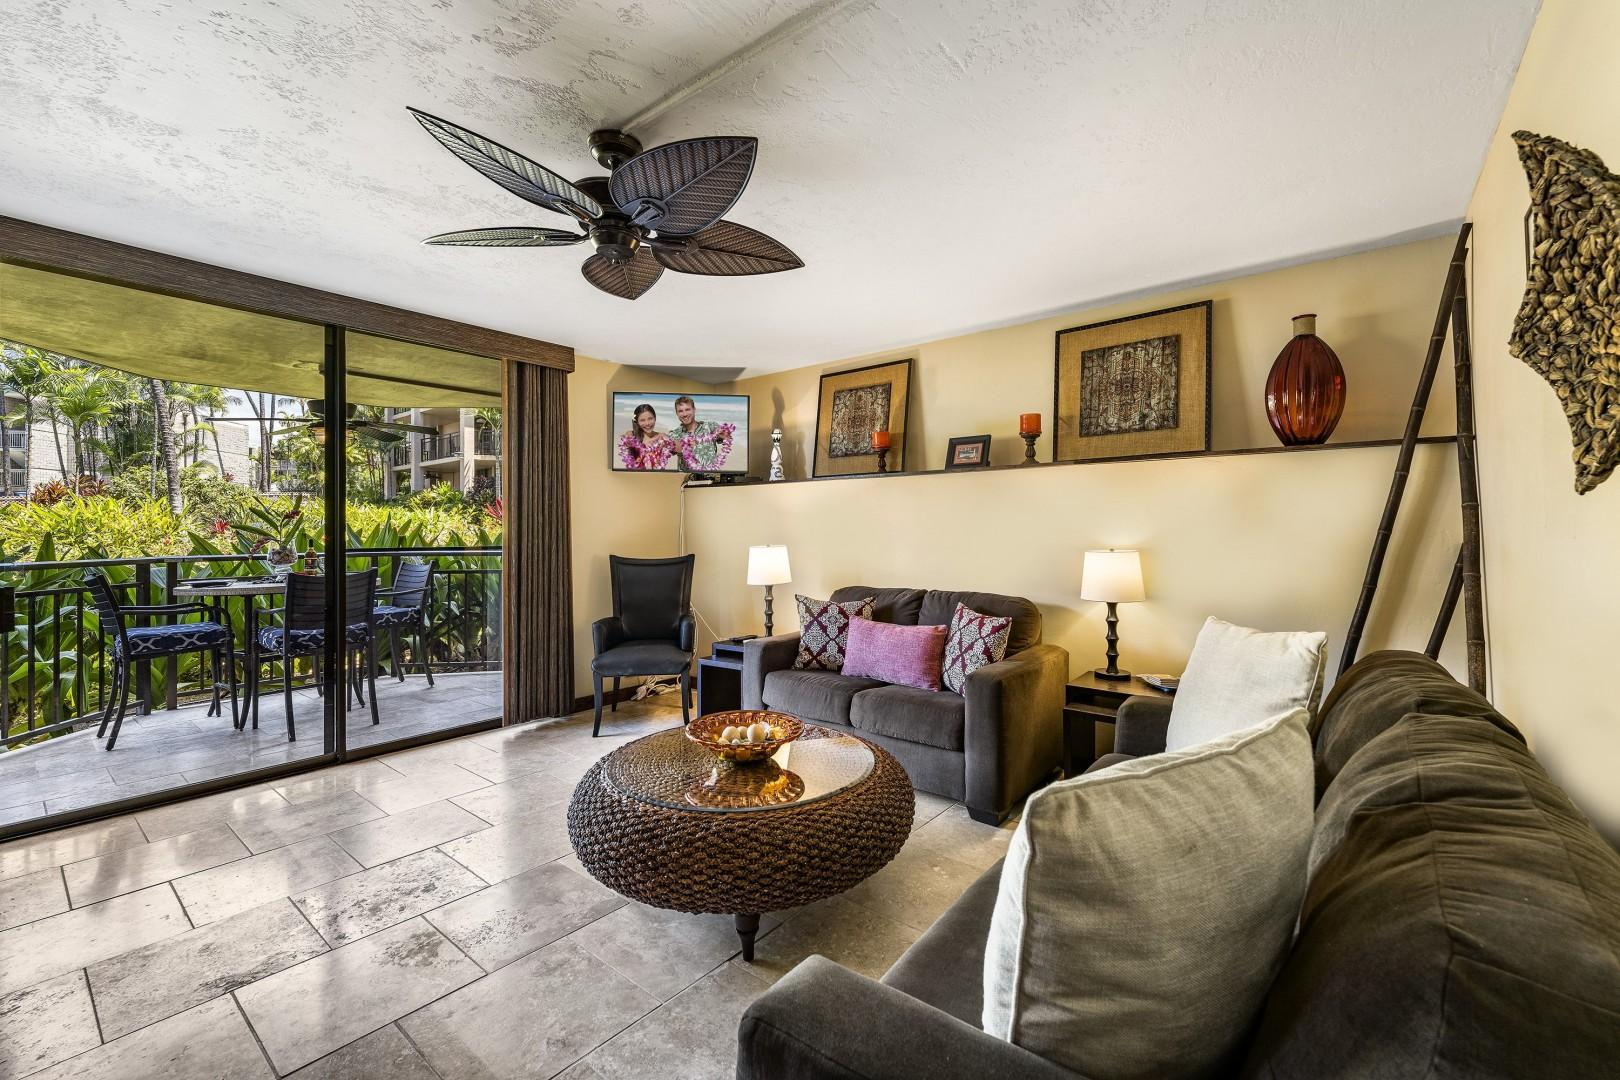 Coming into the living room from the Lanai